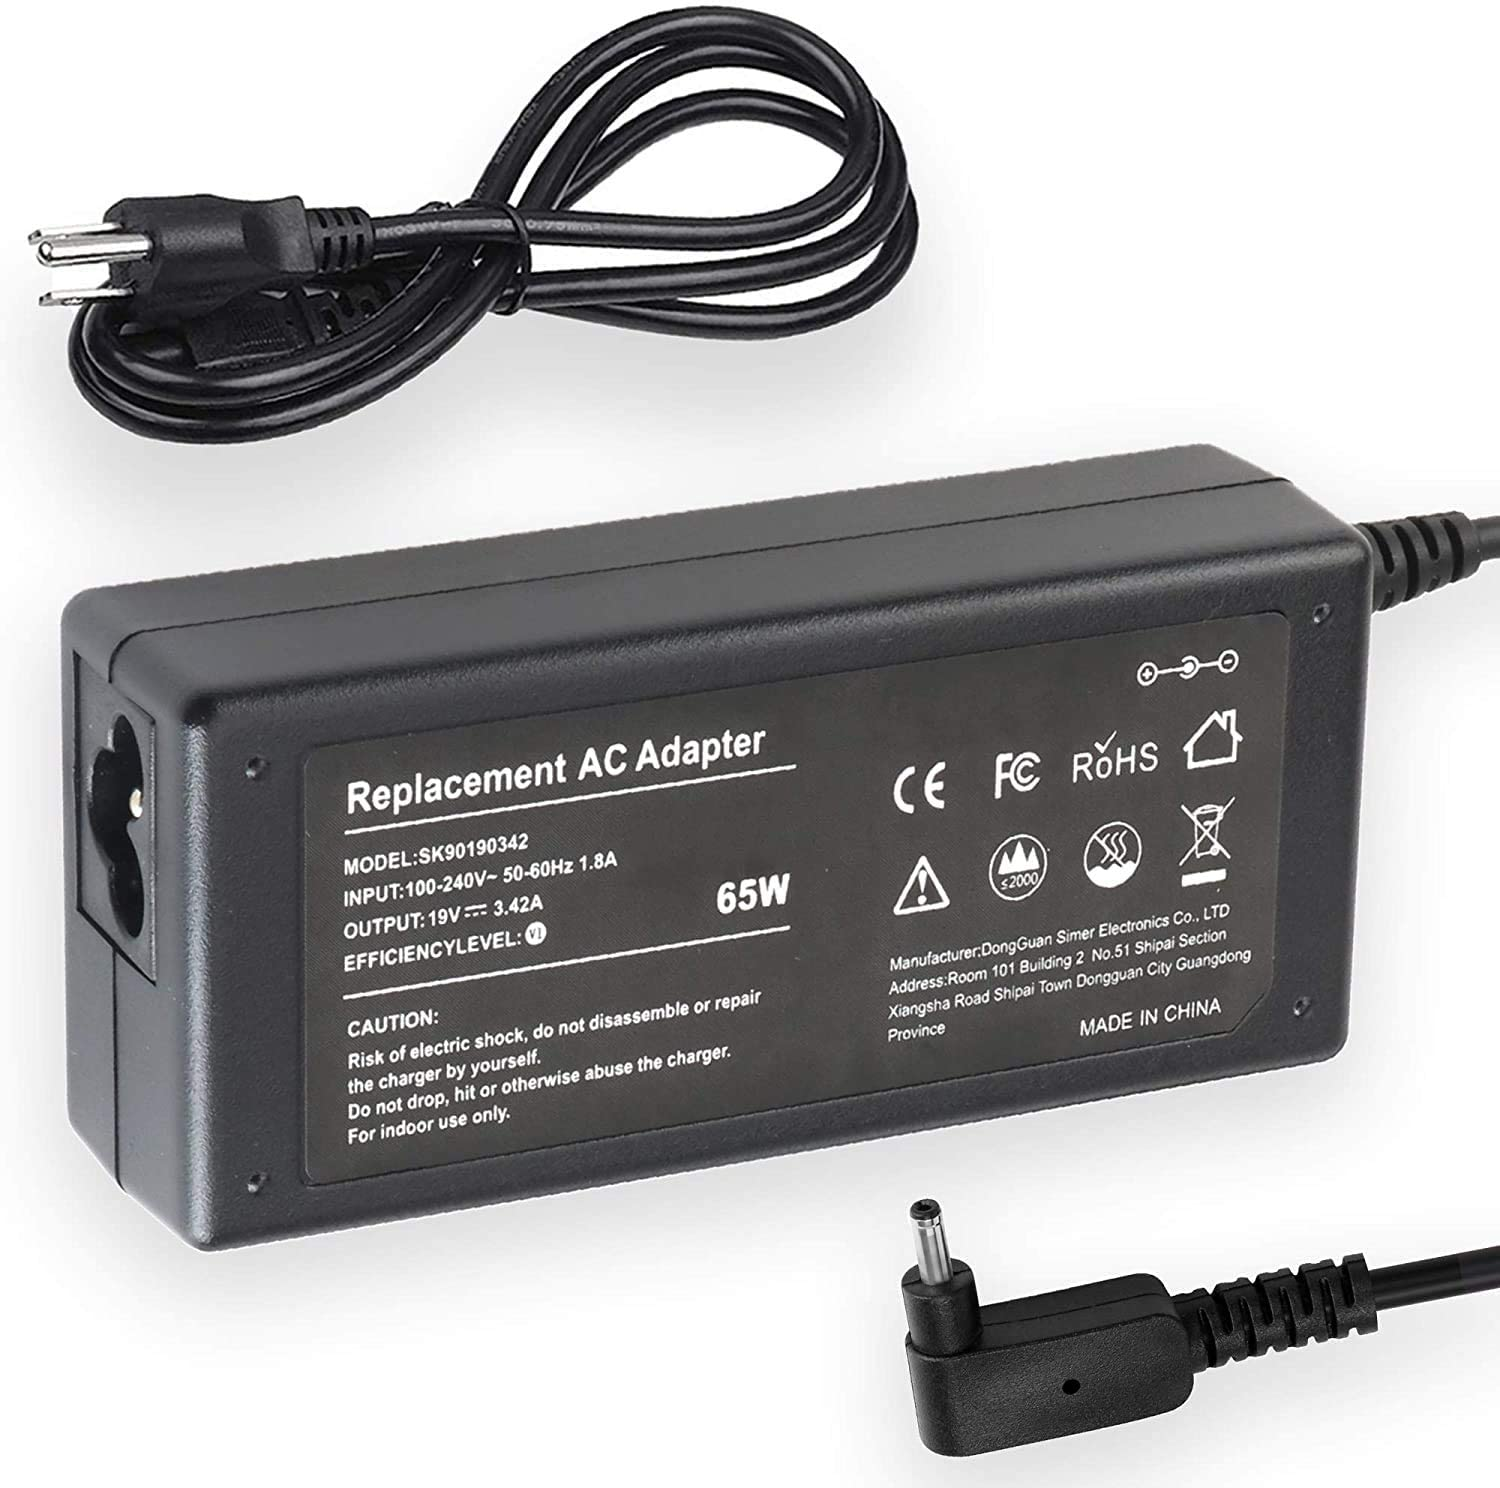 AC Adapter Charger for Acer Chromebook 15 CB5-571-C4T3, CB5-571-C09S; Acer Chromebook 15 CB5-571-C1DZ; Acer Chromebook 15 C910-C453, C910-54M1 Laptop Notebook Battery Power Supply Cord Plug